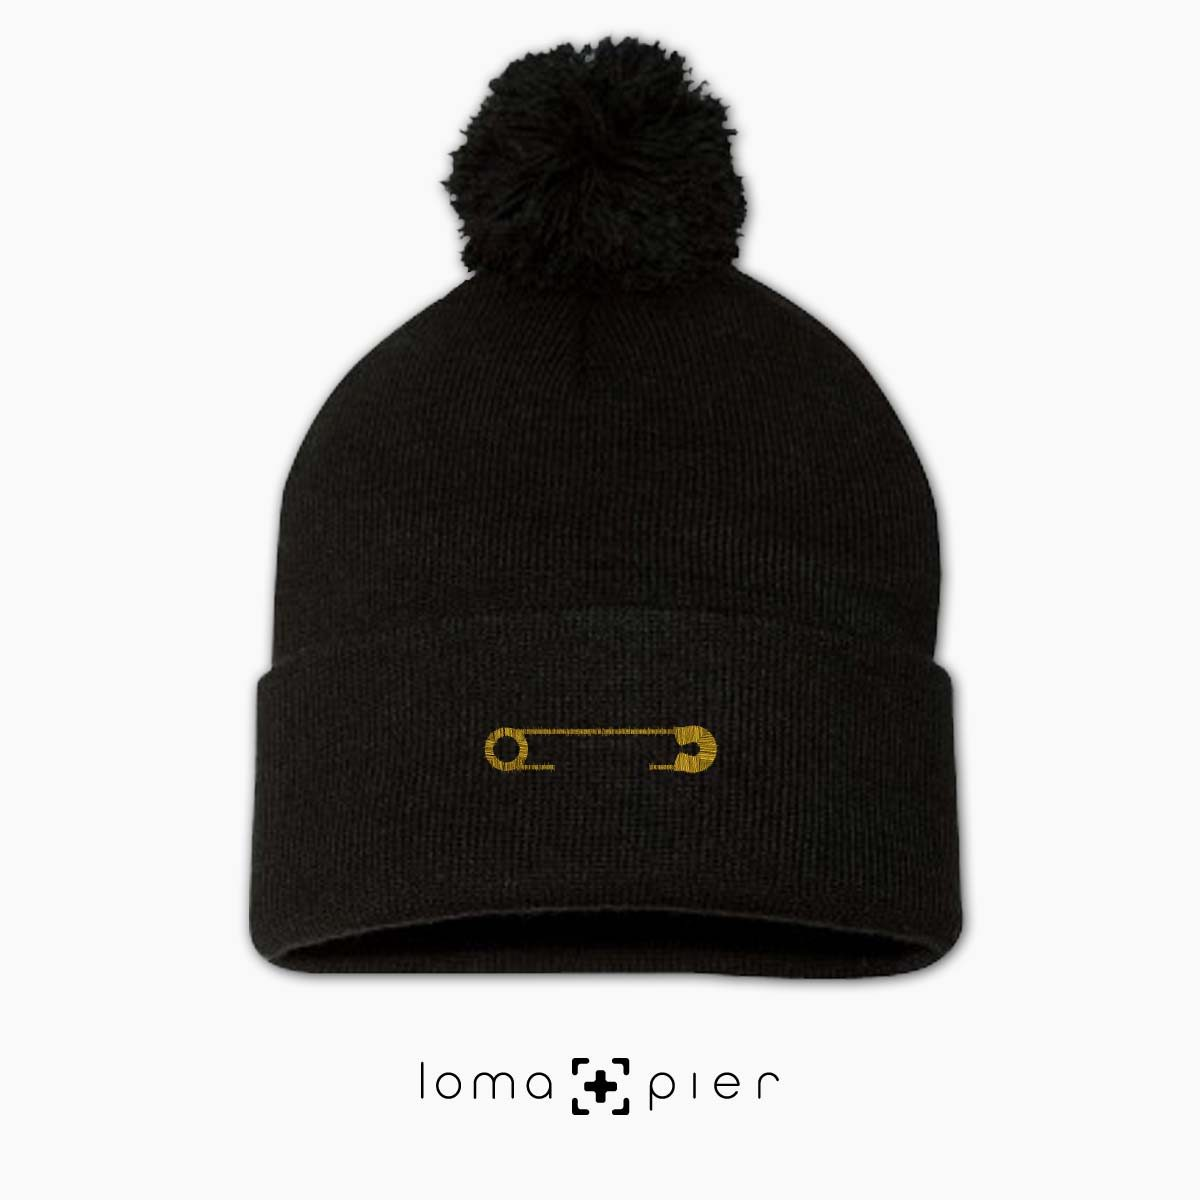 SAFETY PIN icon embroidered on a black pom pom beanie with gold thread by loma+pier hat store